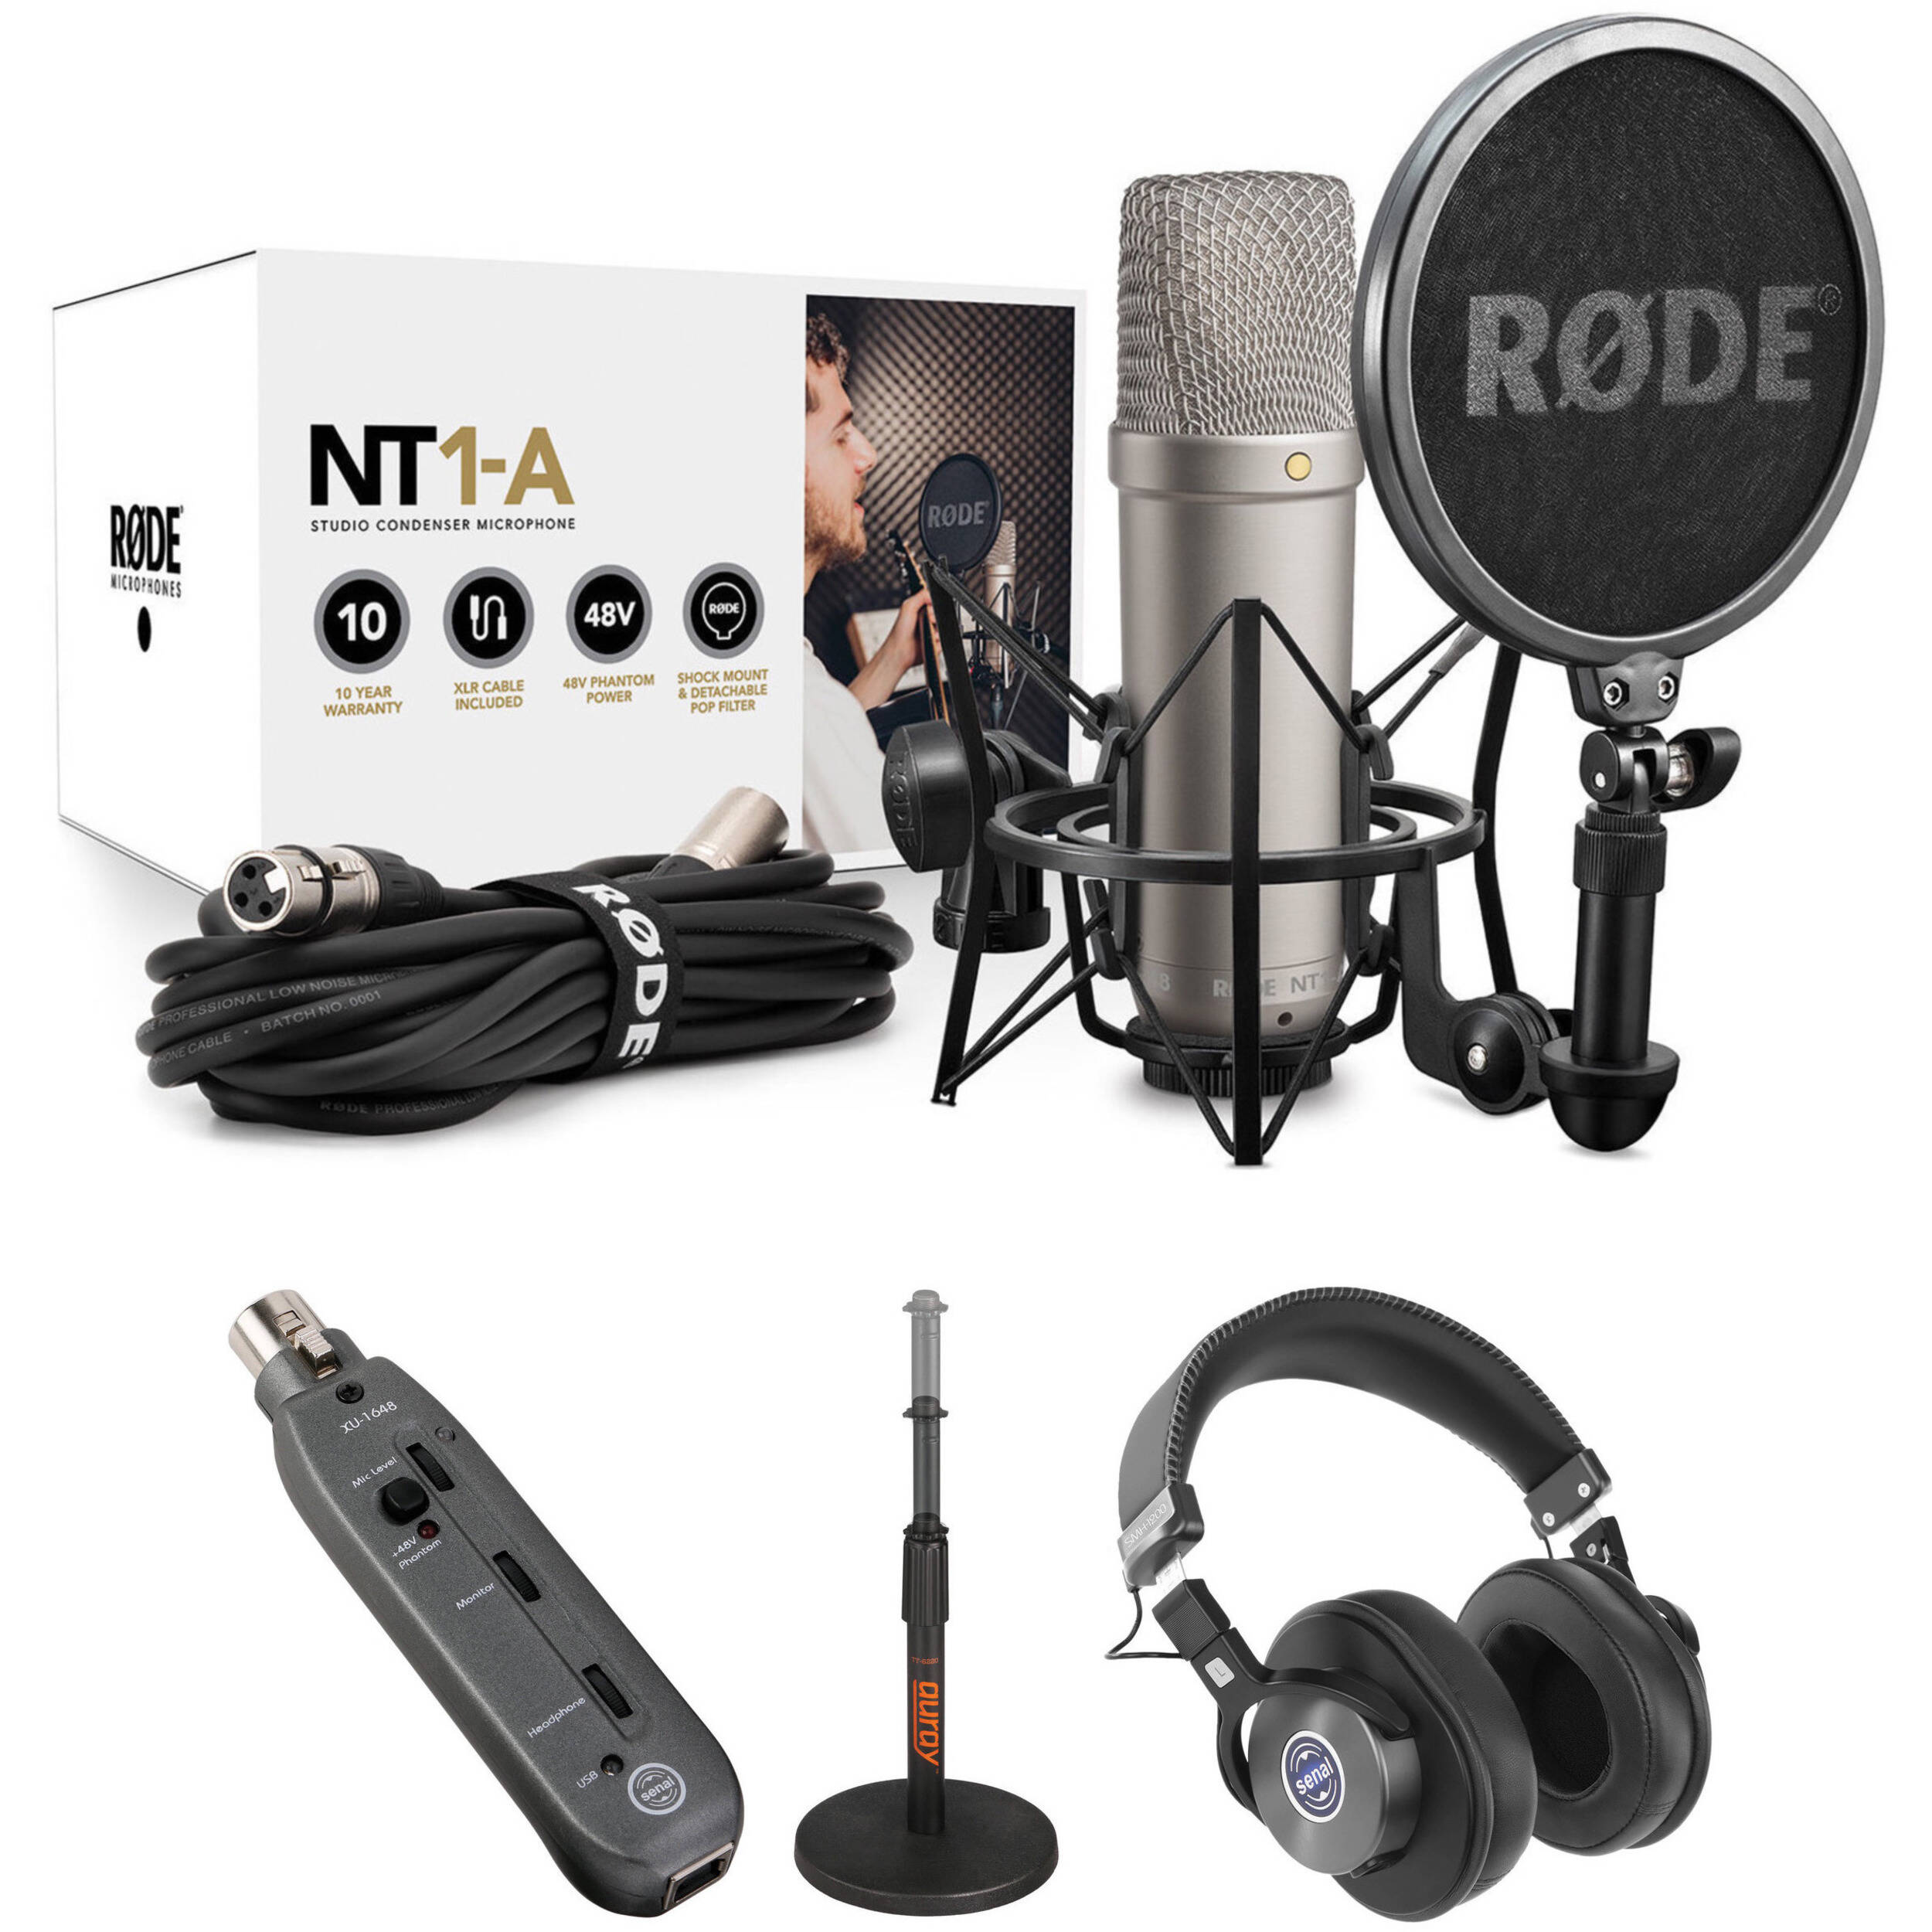 Rode NT1-A Large-Diaphragm Condenser Microphone (Single)